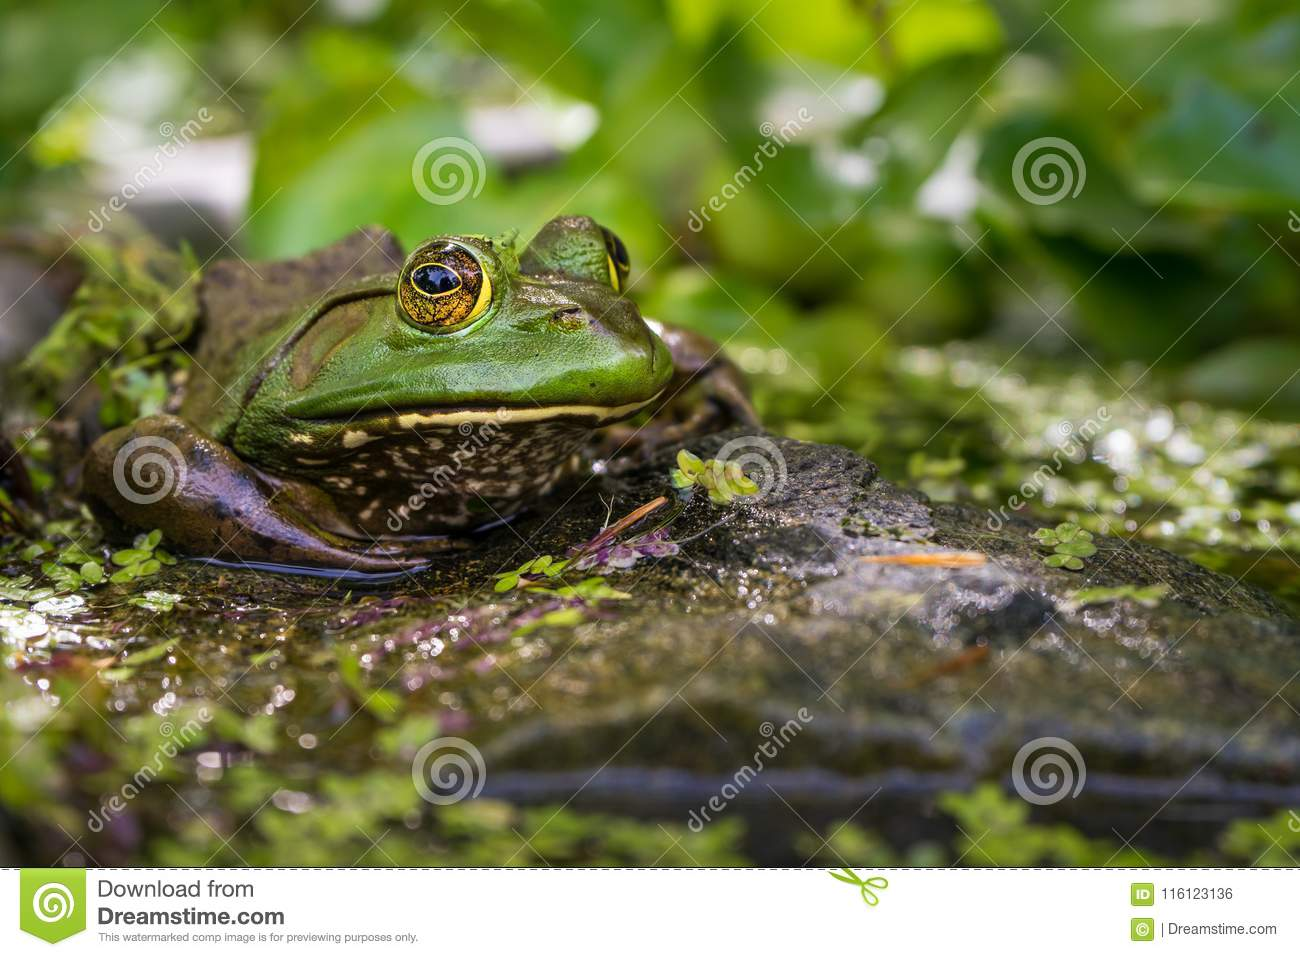 Green frog on the bank of a pond